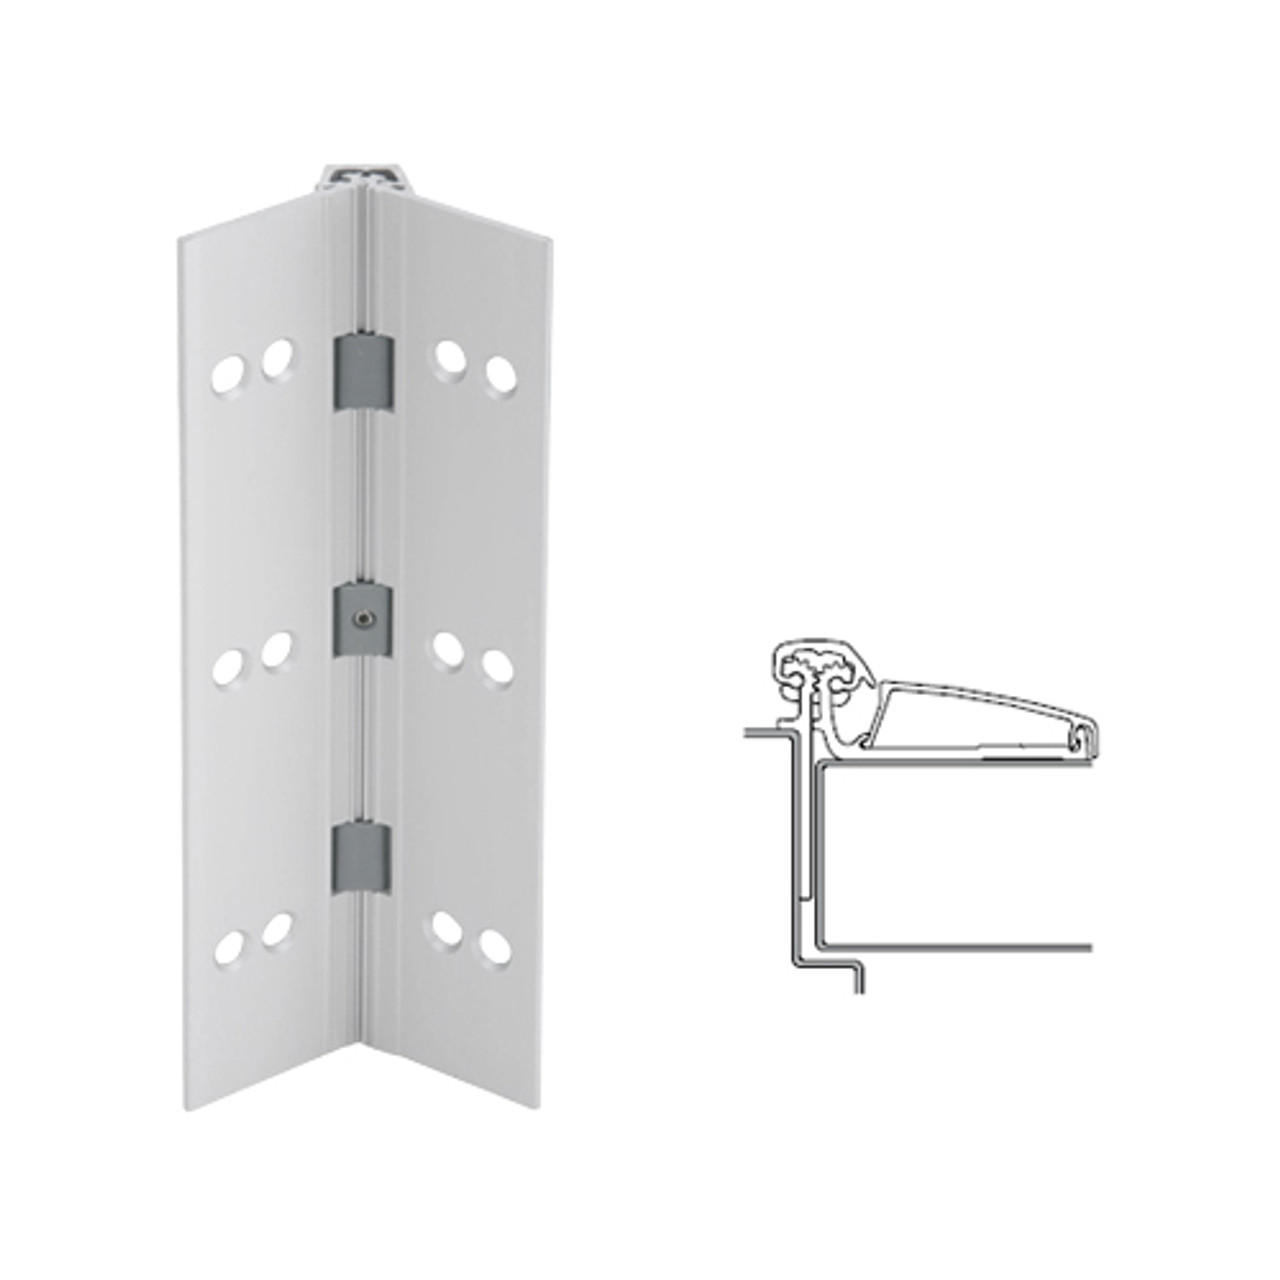 045XY-US28-120-TF IVES Adjustable Half Surface Continuous Geared Hinges with Thread Forming Screws in Satin Aluminum